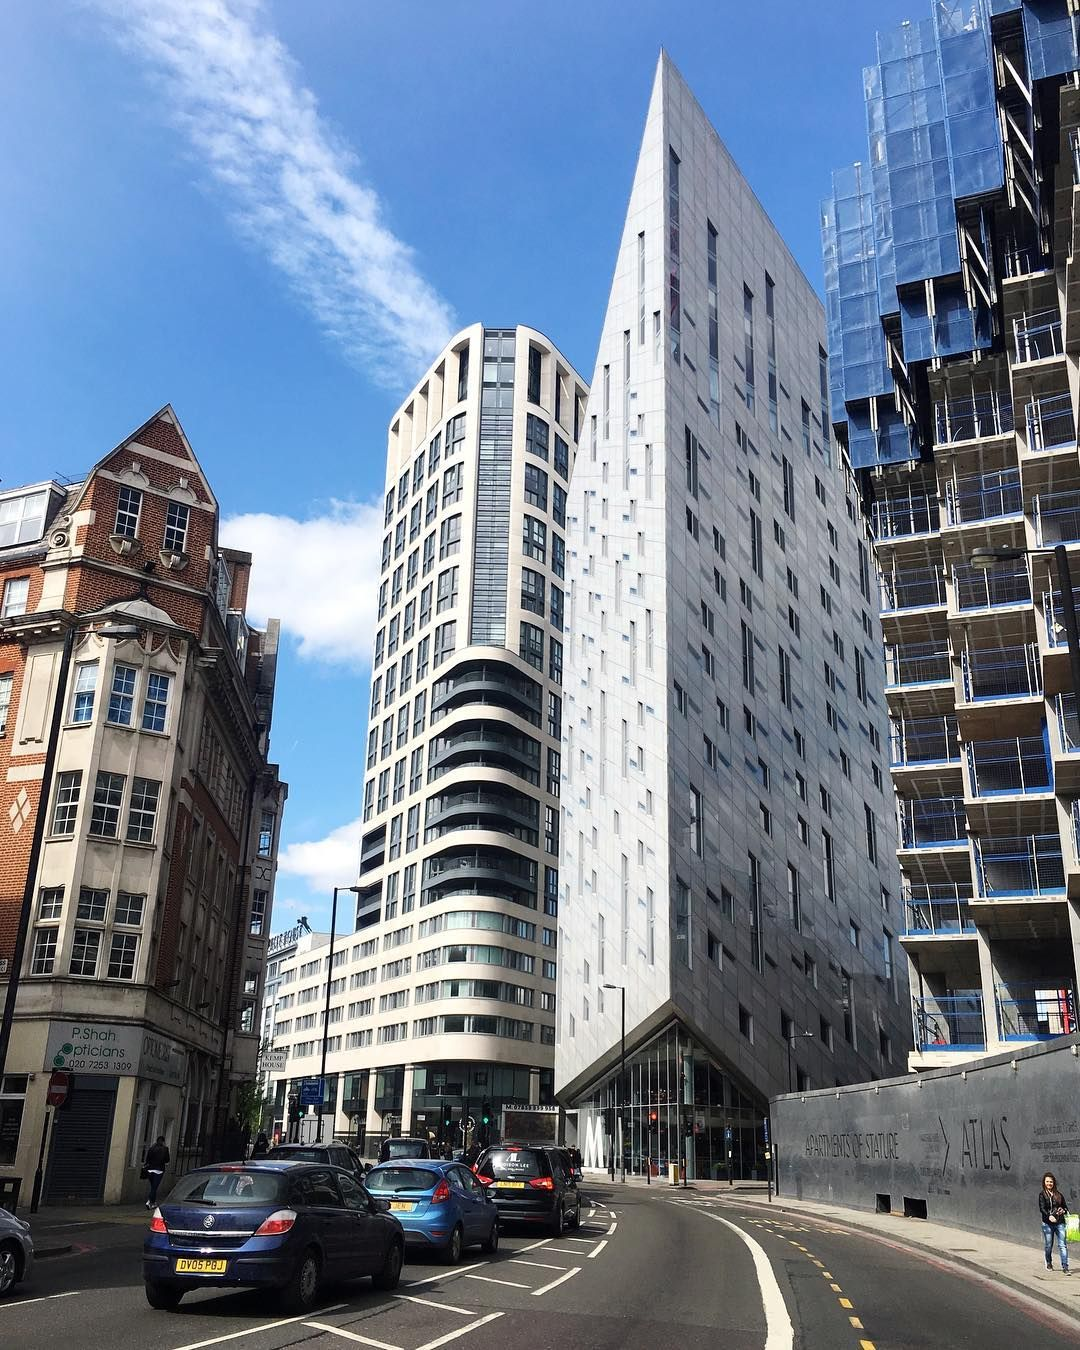 Montcalm Shoreditch: The Trippy M By Montcalm Hotel In Shoreditch, East London